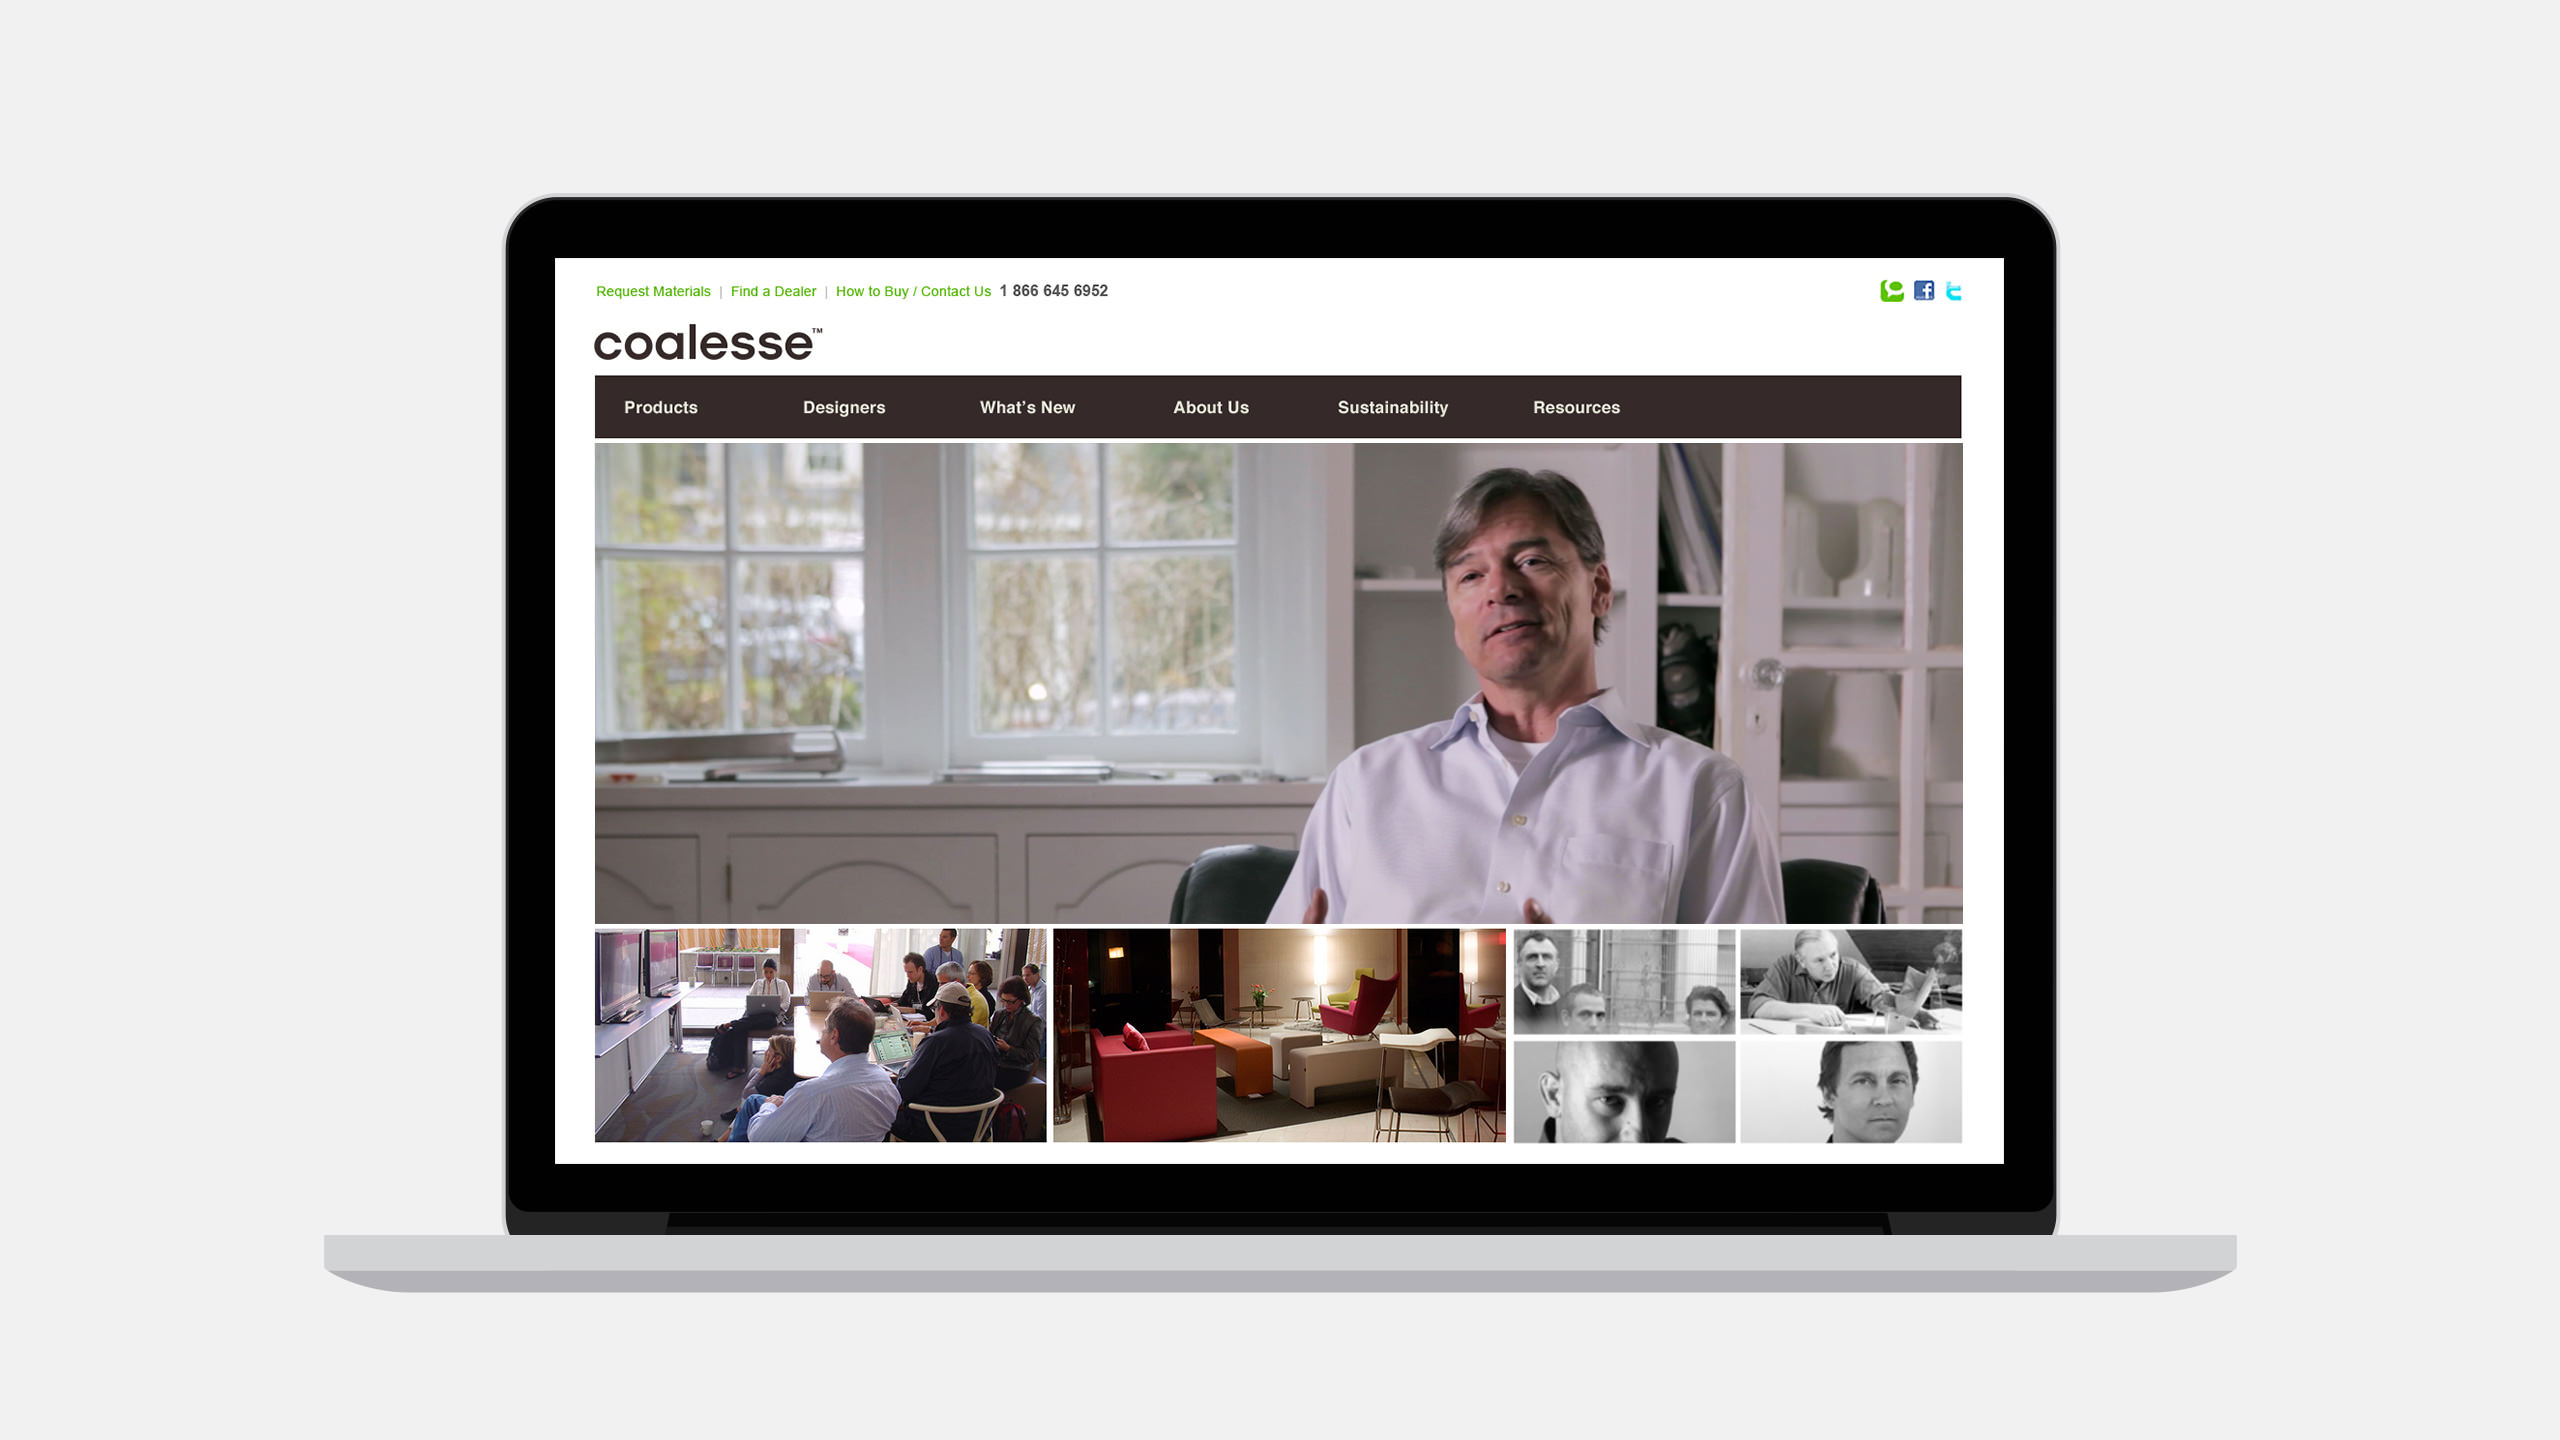 Coalesse Website Launch on laptop showing Stephan Copeland